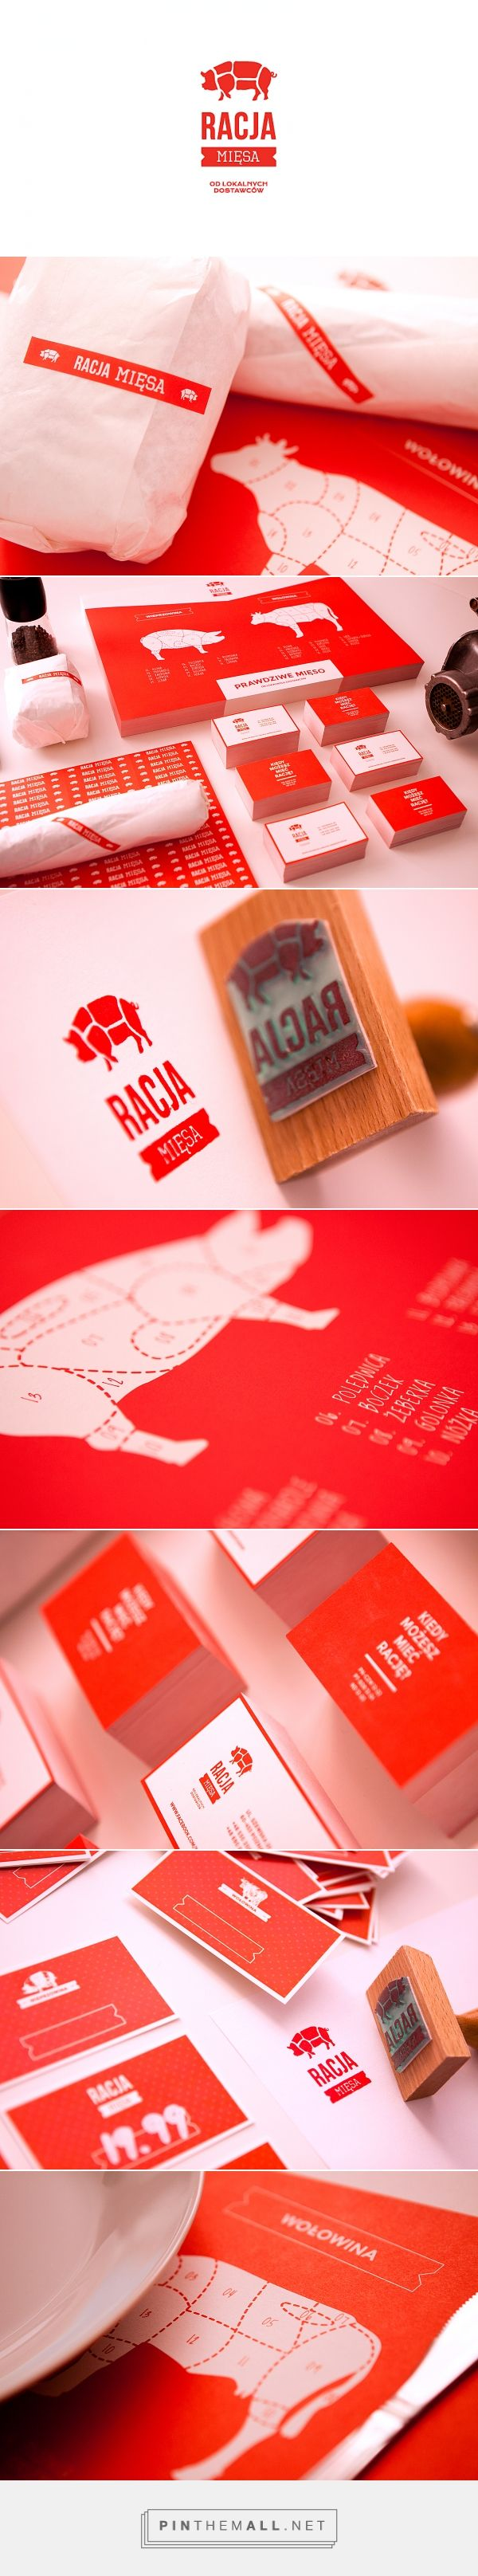 RACJA MIĘSA packaging branding on Behance curated by Packaging Diva PD. Guess it's pork for dinner : ) PD